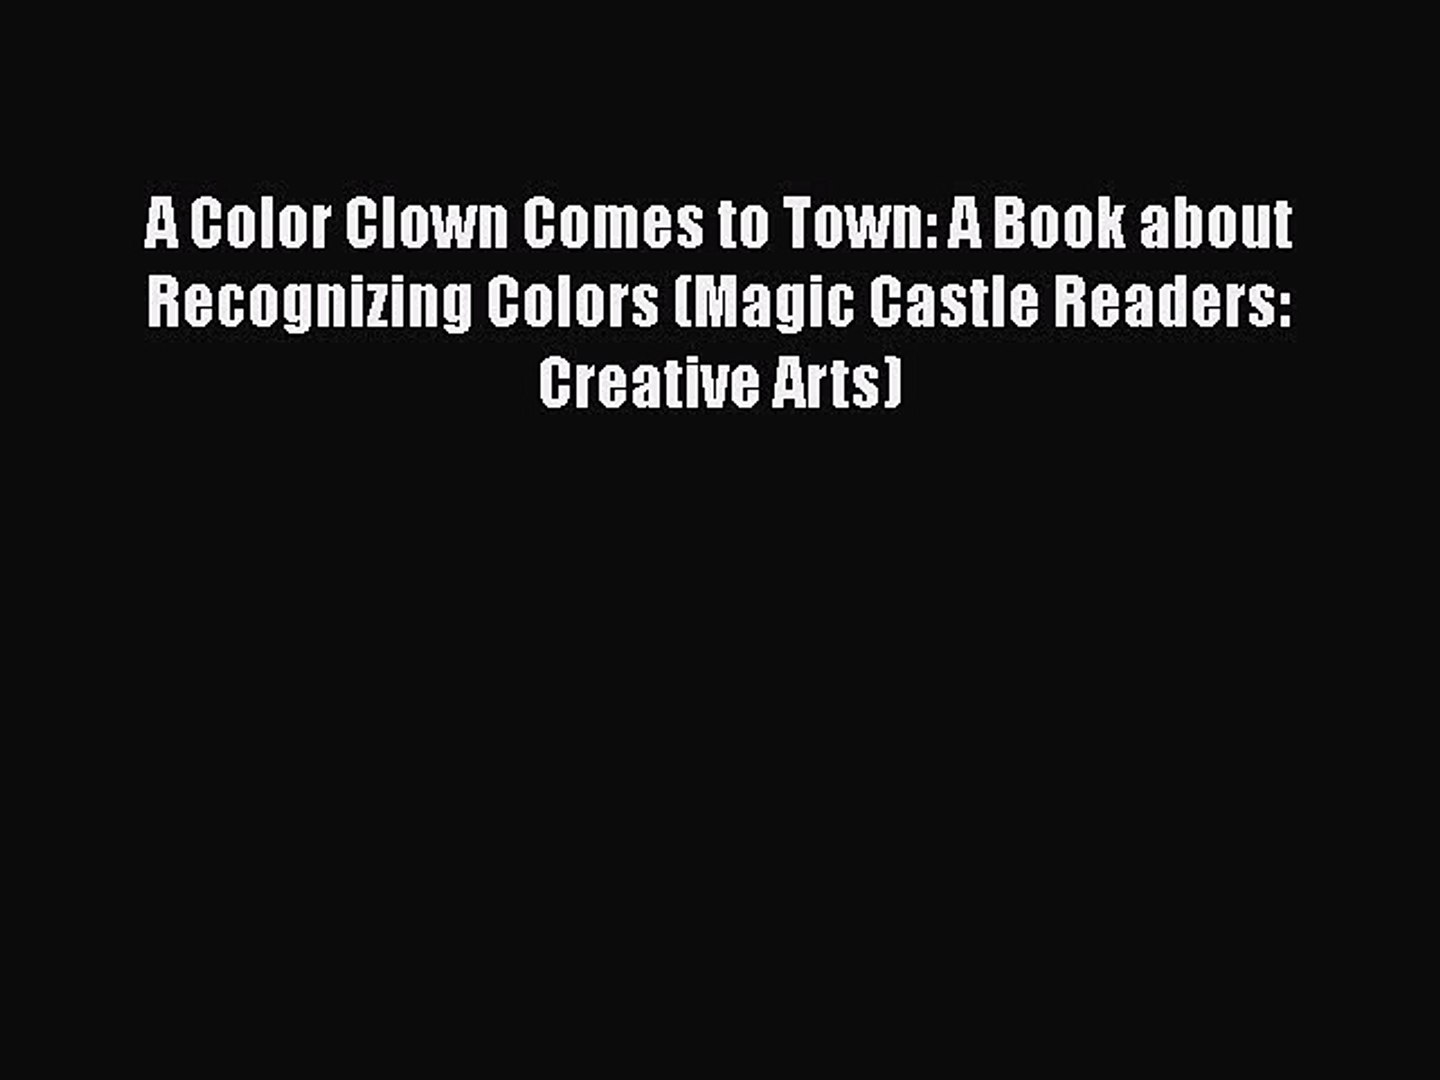 Download A Color Clown Comes to Town: A Book about Recognizing Colors (Magic Castle Readers: